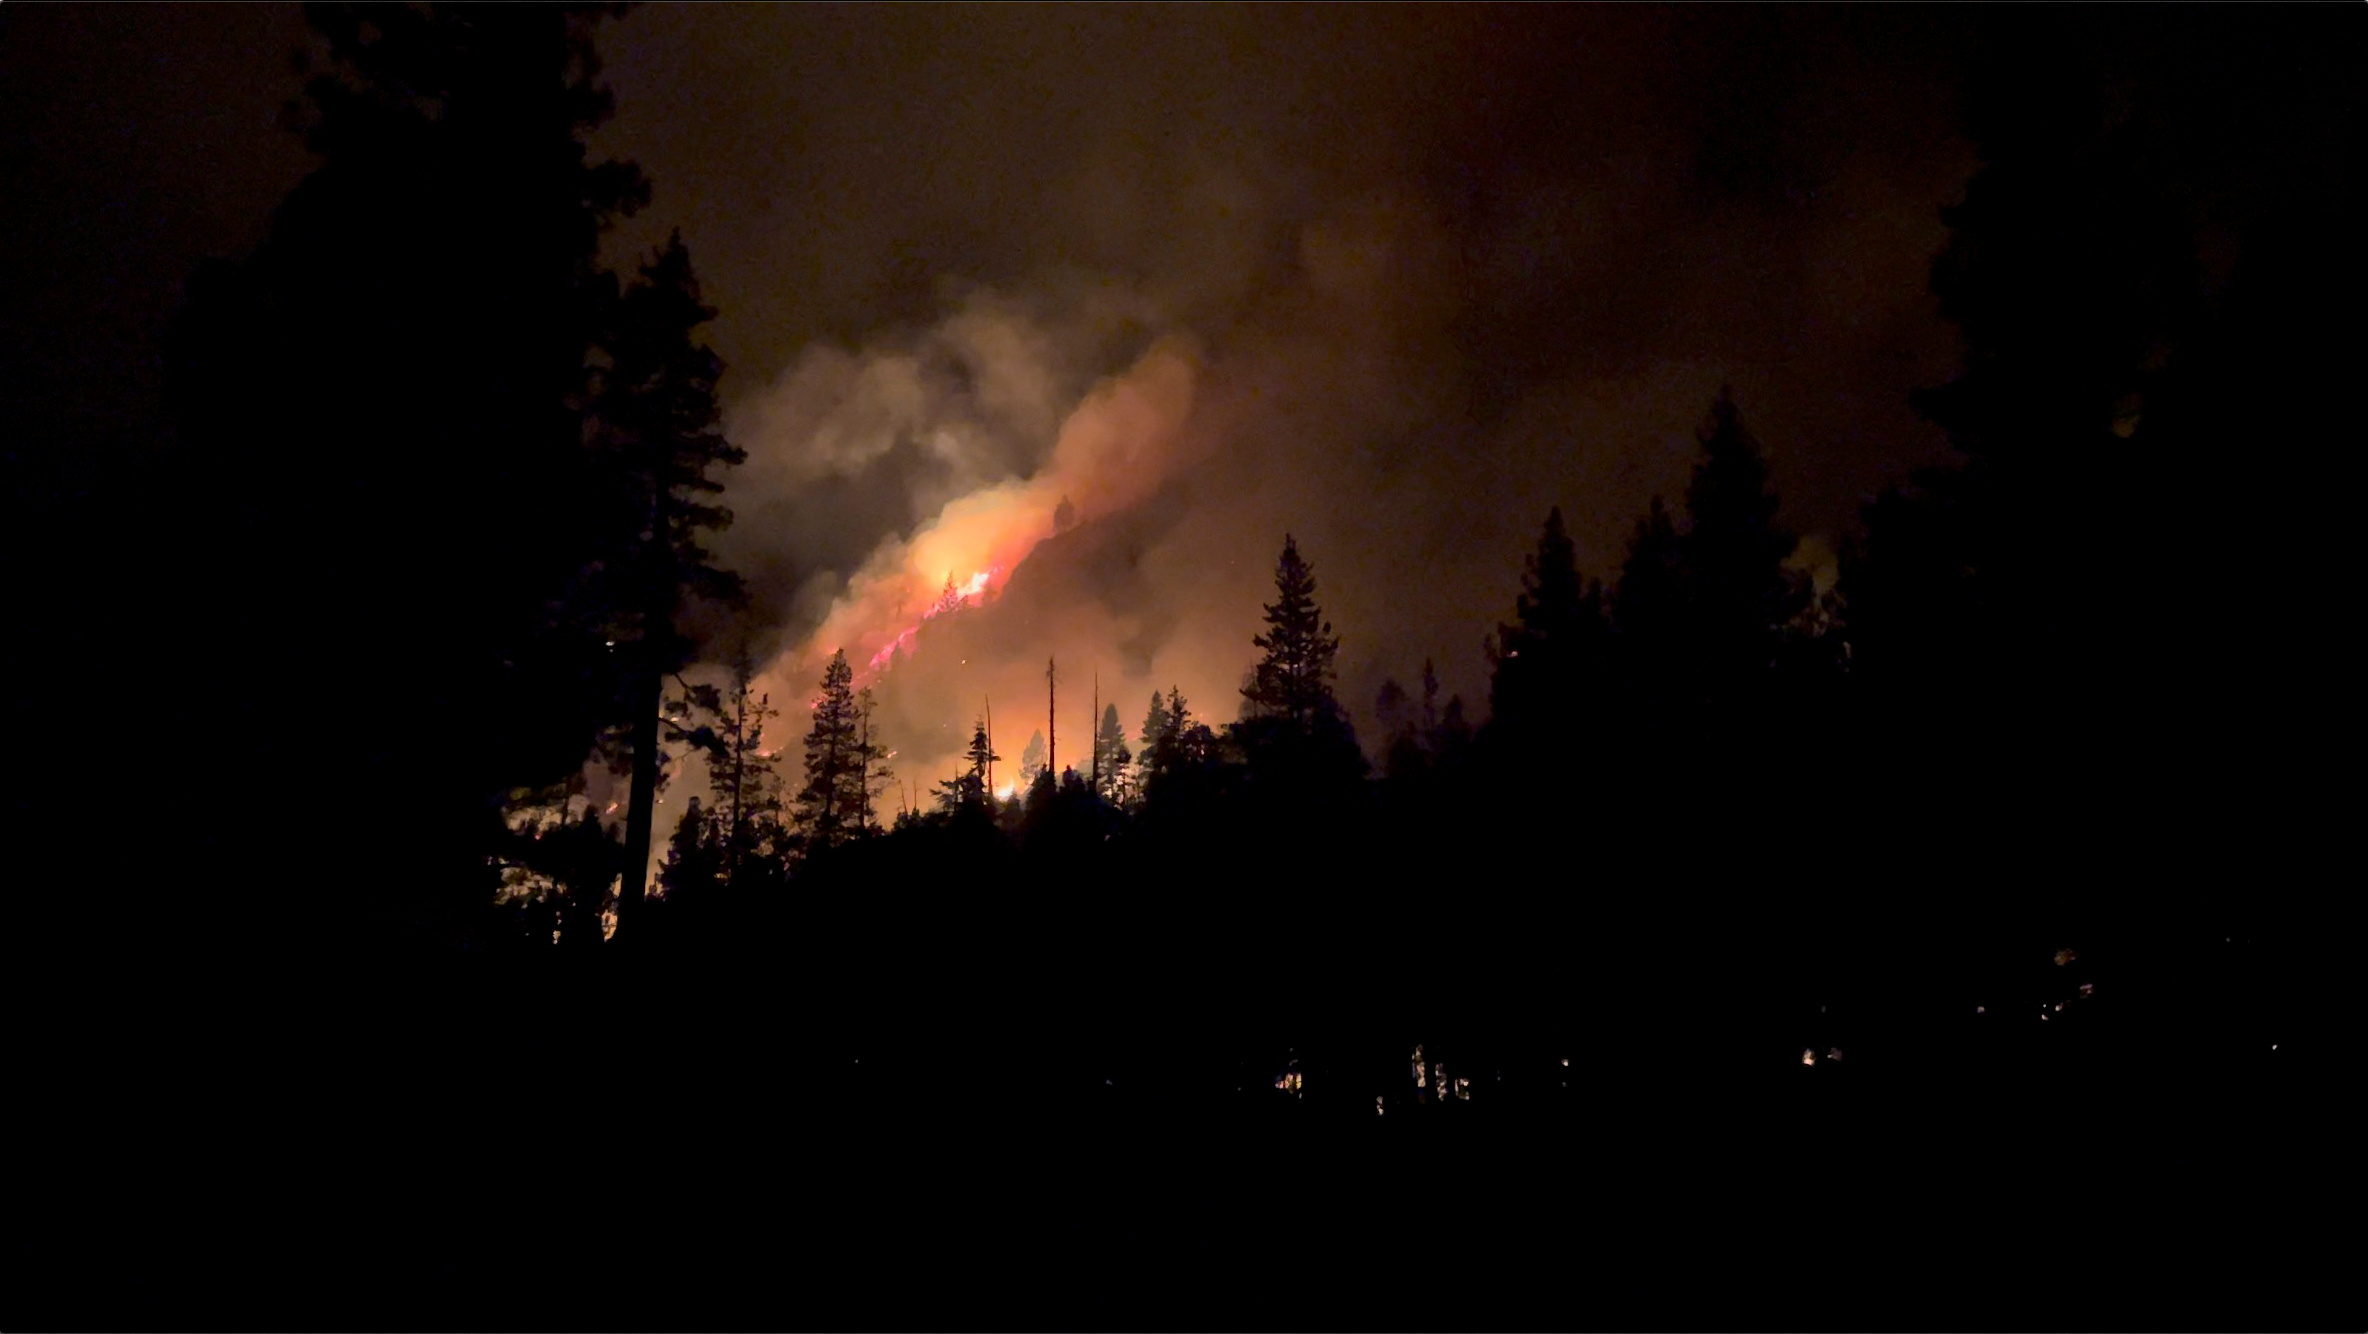 Smoke and flames are seen amid an early morning wildfire in South Lake Tahoe, California, U.S. August 31, 2021, in this still image from video obtained via social media. Nicholas Vides/The Oak Leaf via REUTERS